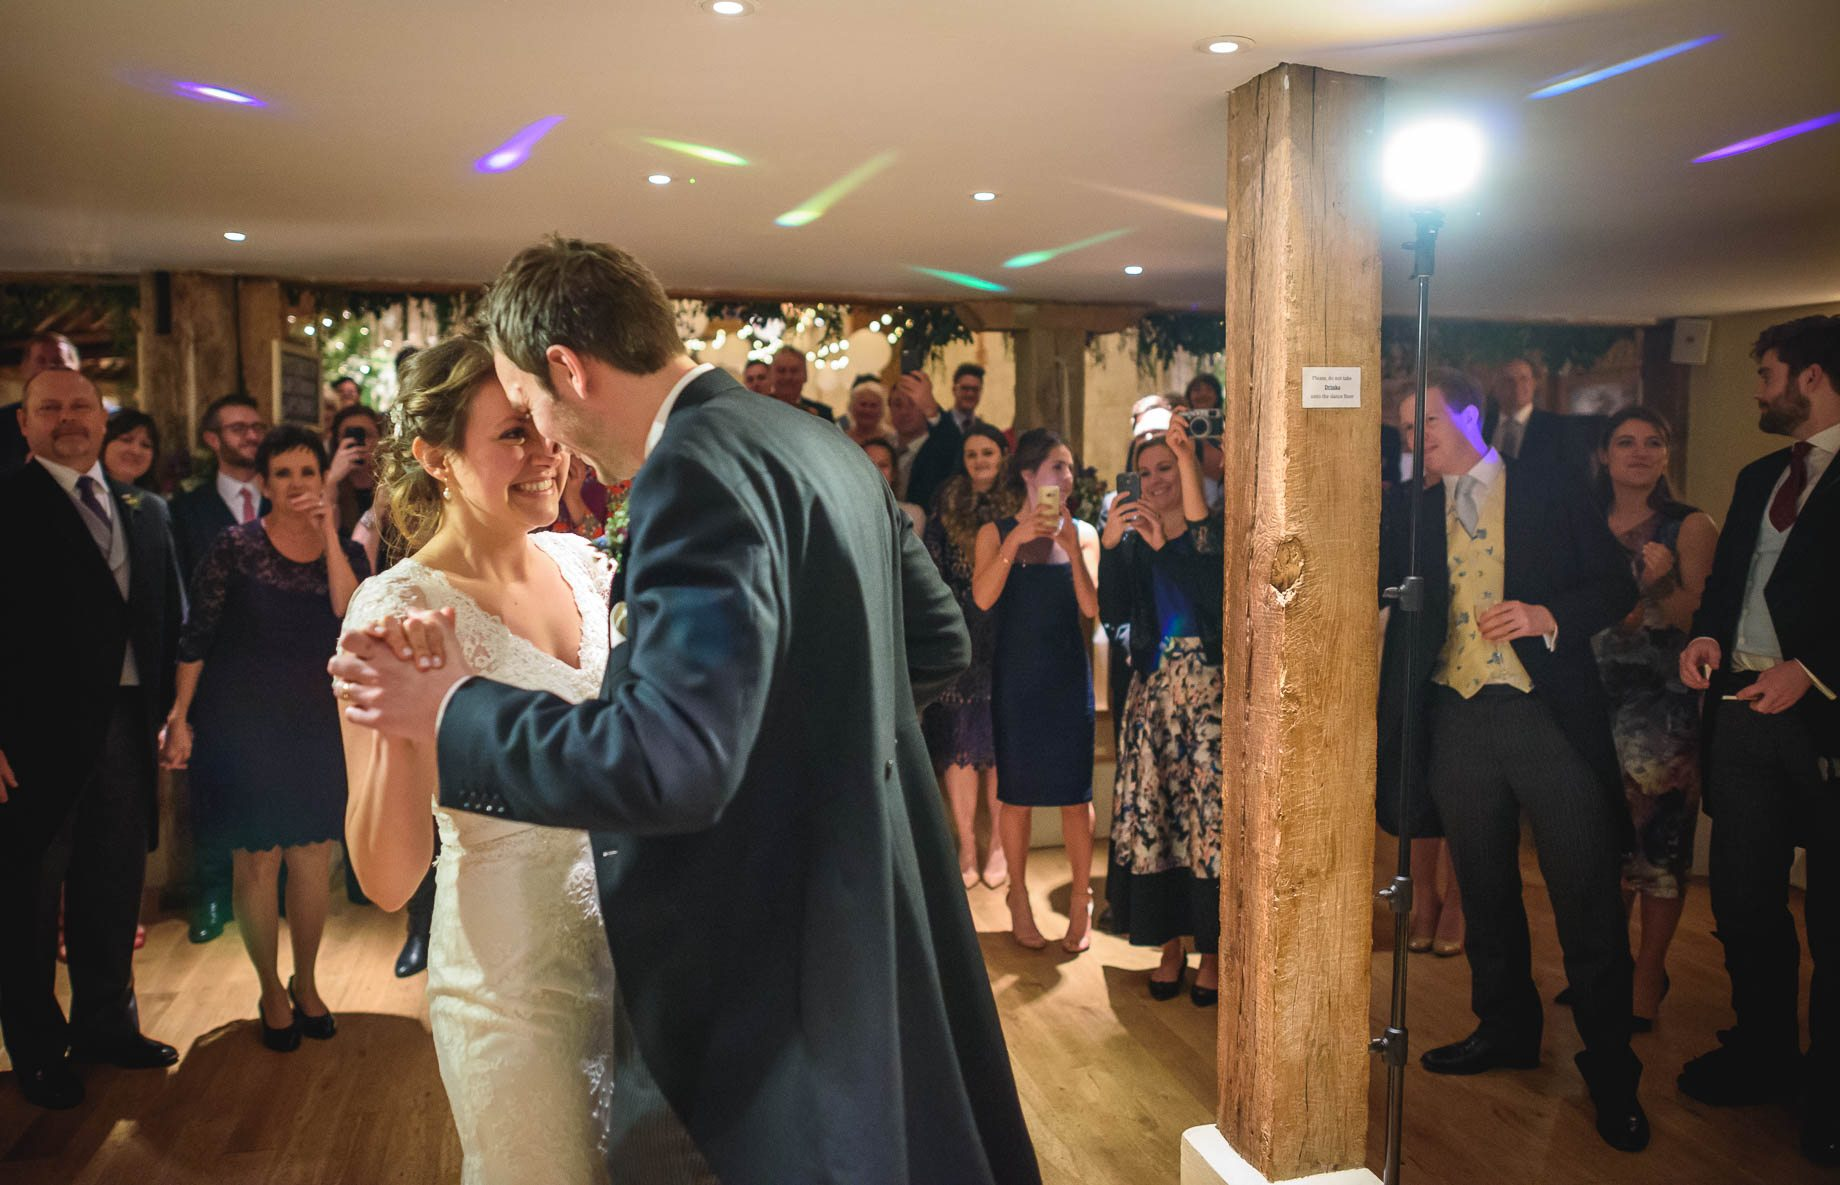 Bury Court Barn wedding photography - Ashley and Henry by Guy Collier Photography (166 of 188)